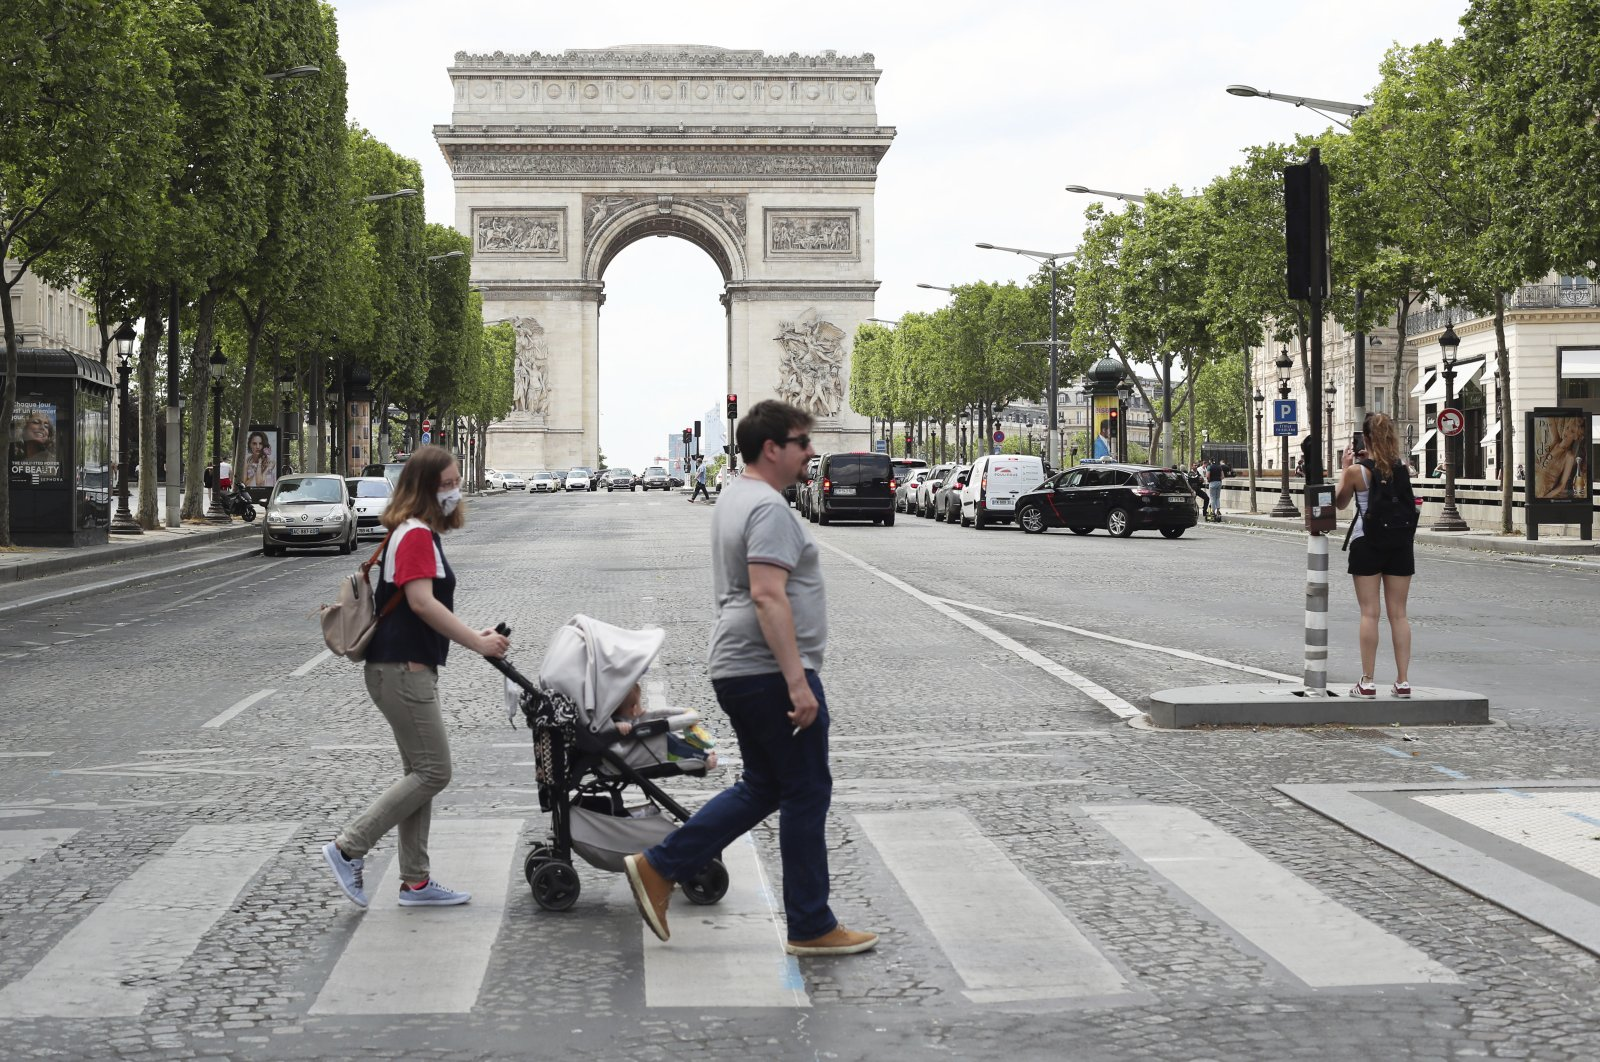 People stroll on the Champs Elysees avenue in Paris, France, June 3, 2020. (AP Photo)